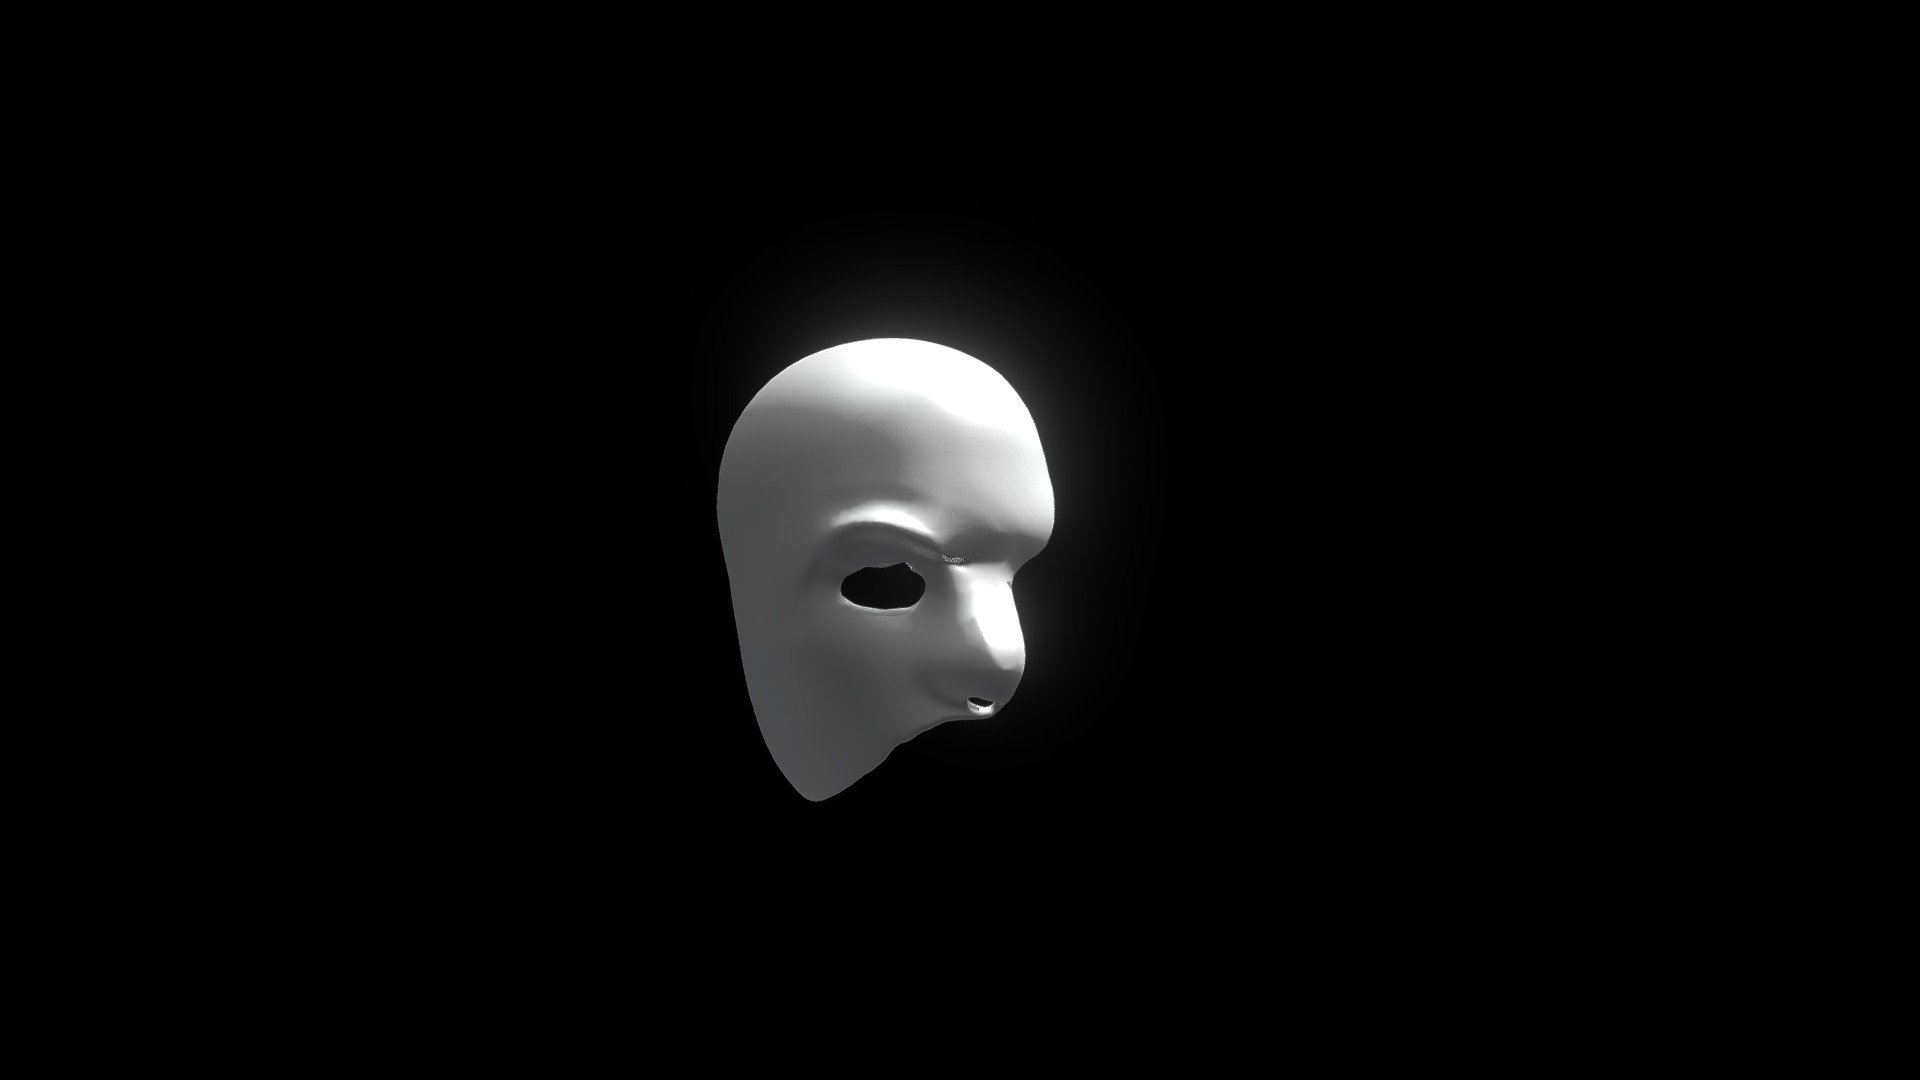 Phantom Of The Opera Mask Download Free 3d Model By Youknowwho Youknowwho 8550b83 Sketchfab